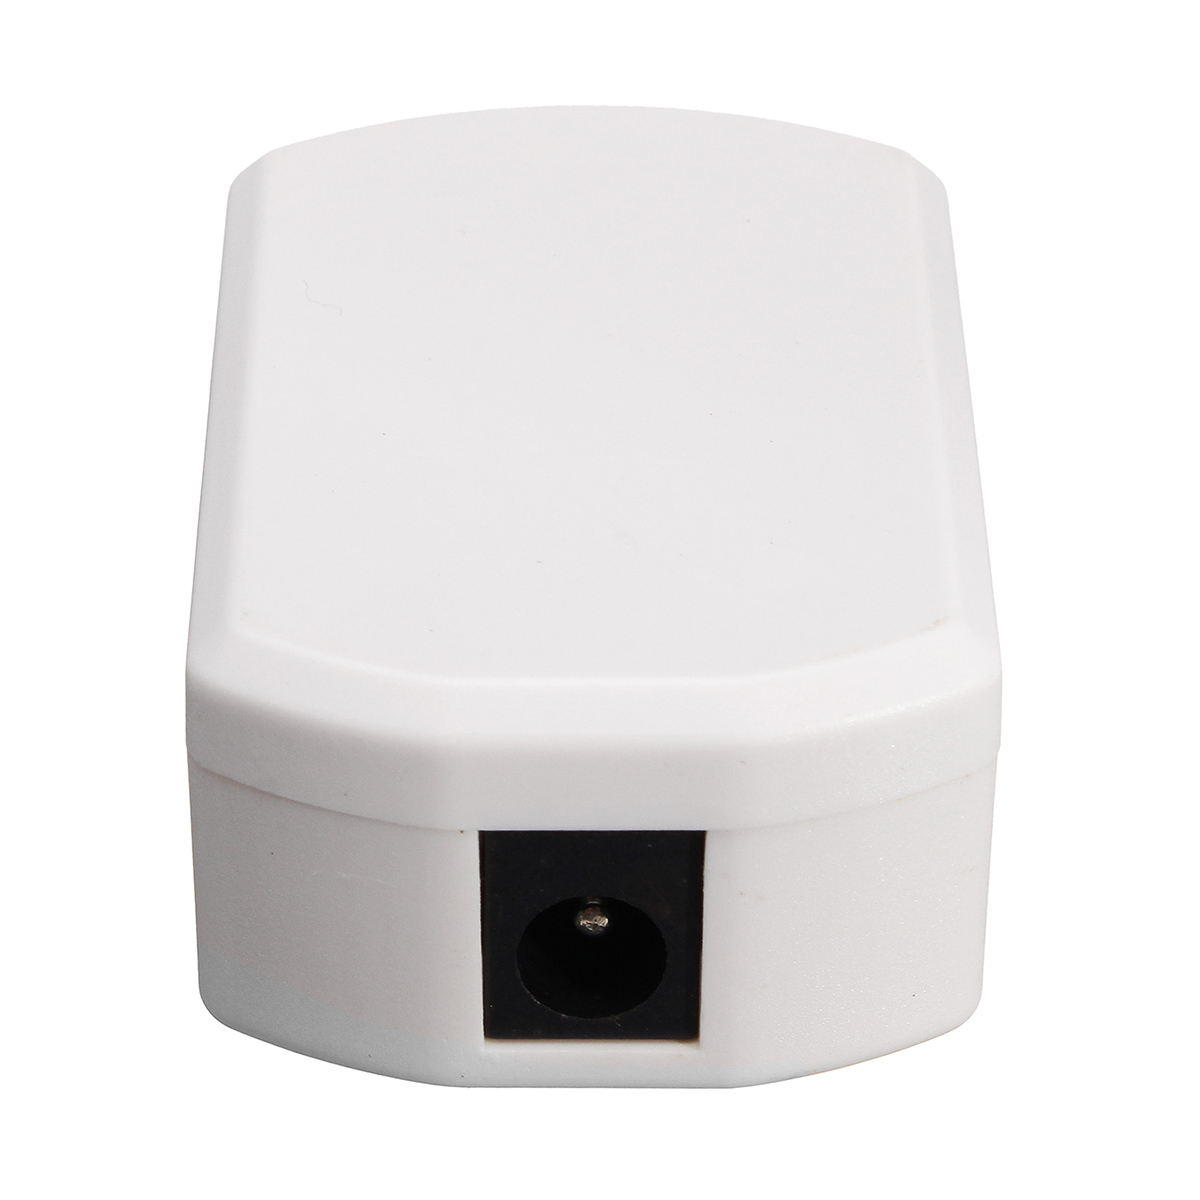 LED Light Connection Box Block Terminal Two Sides with 3 Holes for Cabinet Lamp Downlight Spotlight